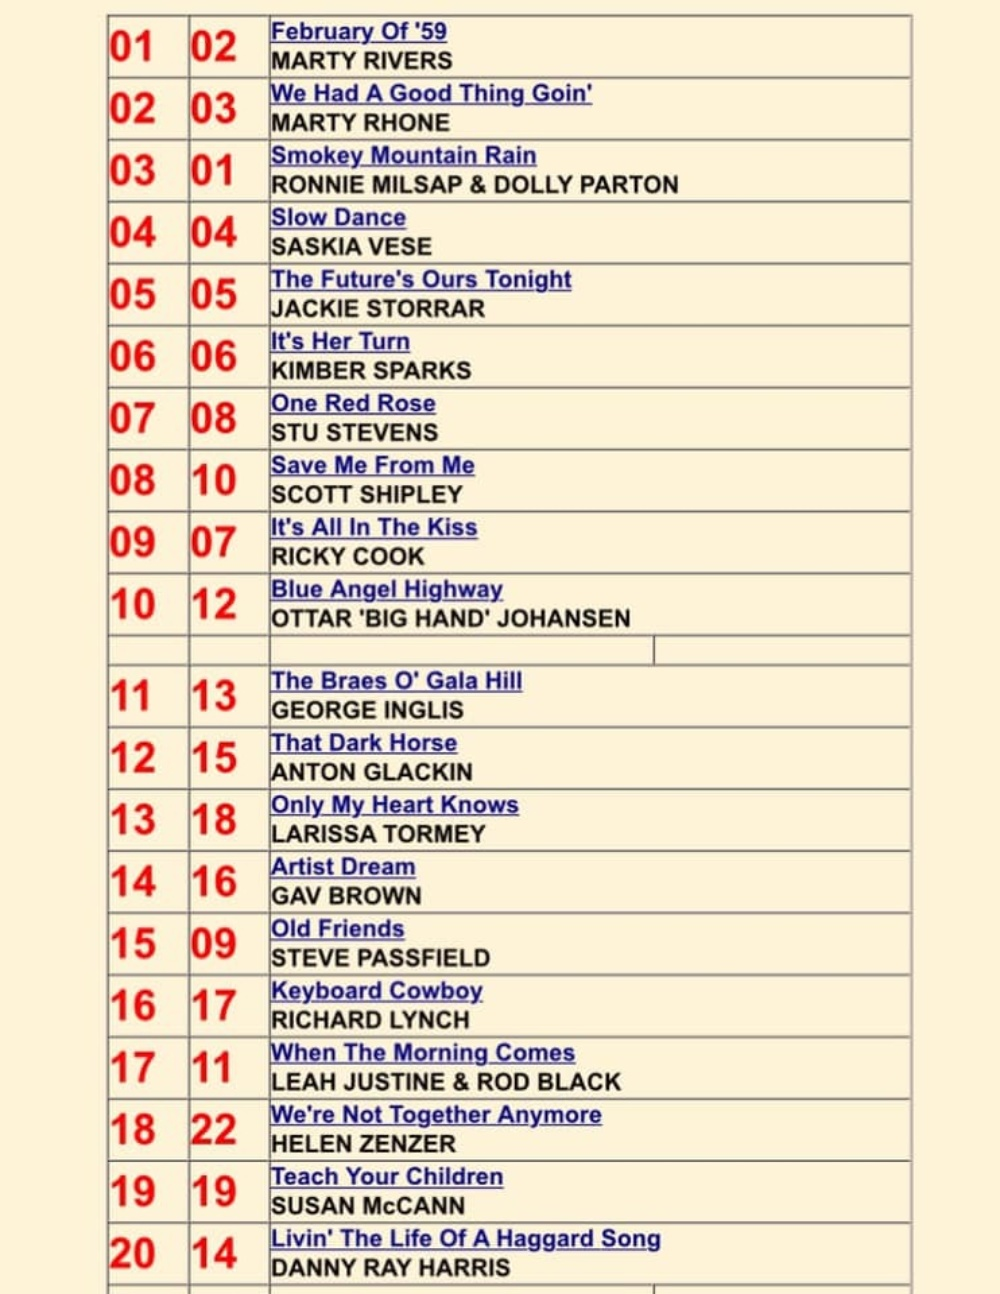 26/5/2019 Artist Dream from the Sound Circus Album at number 14 in the Hotdisc tv Top 40 Chart in the UK